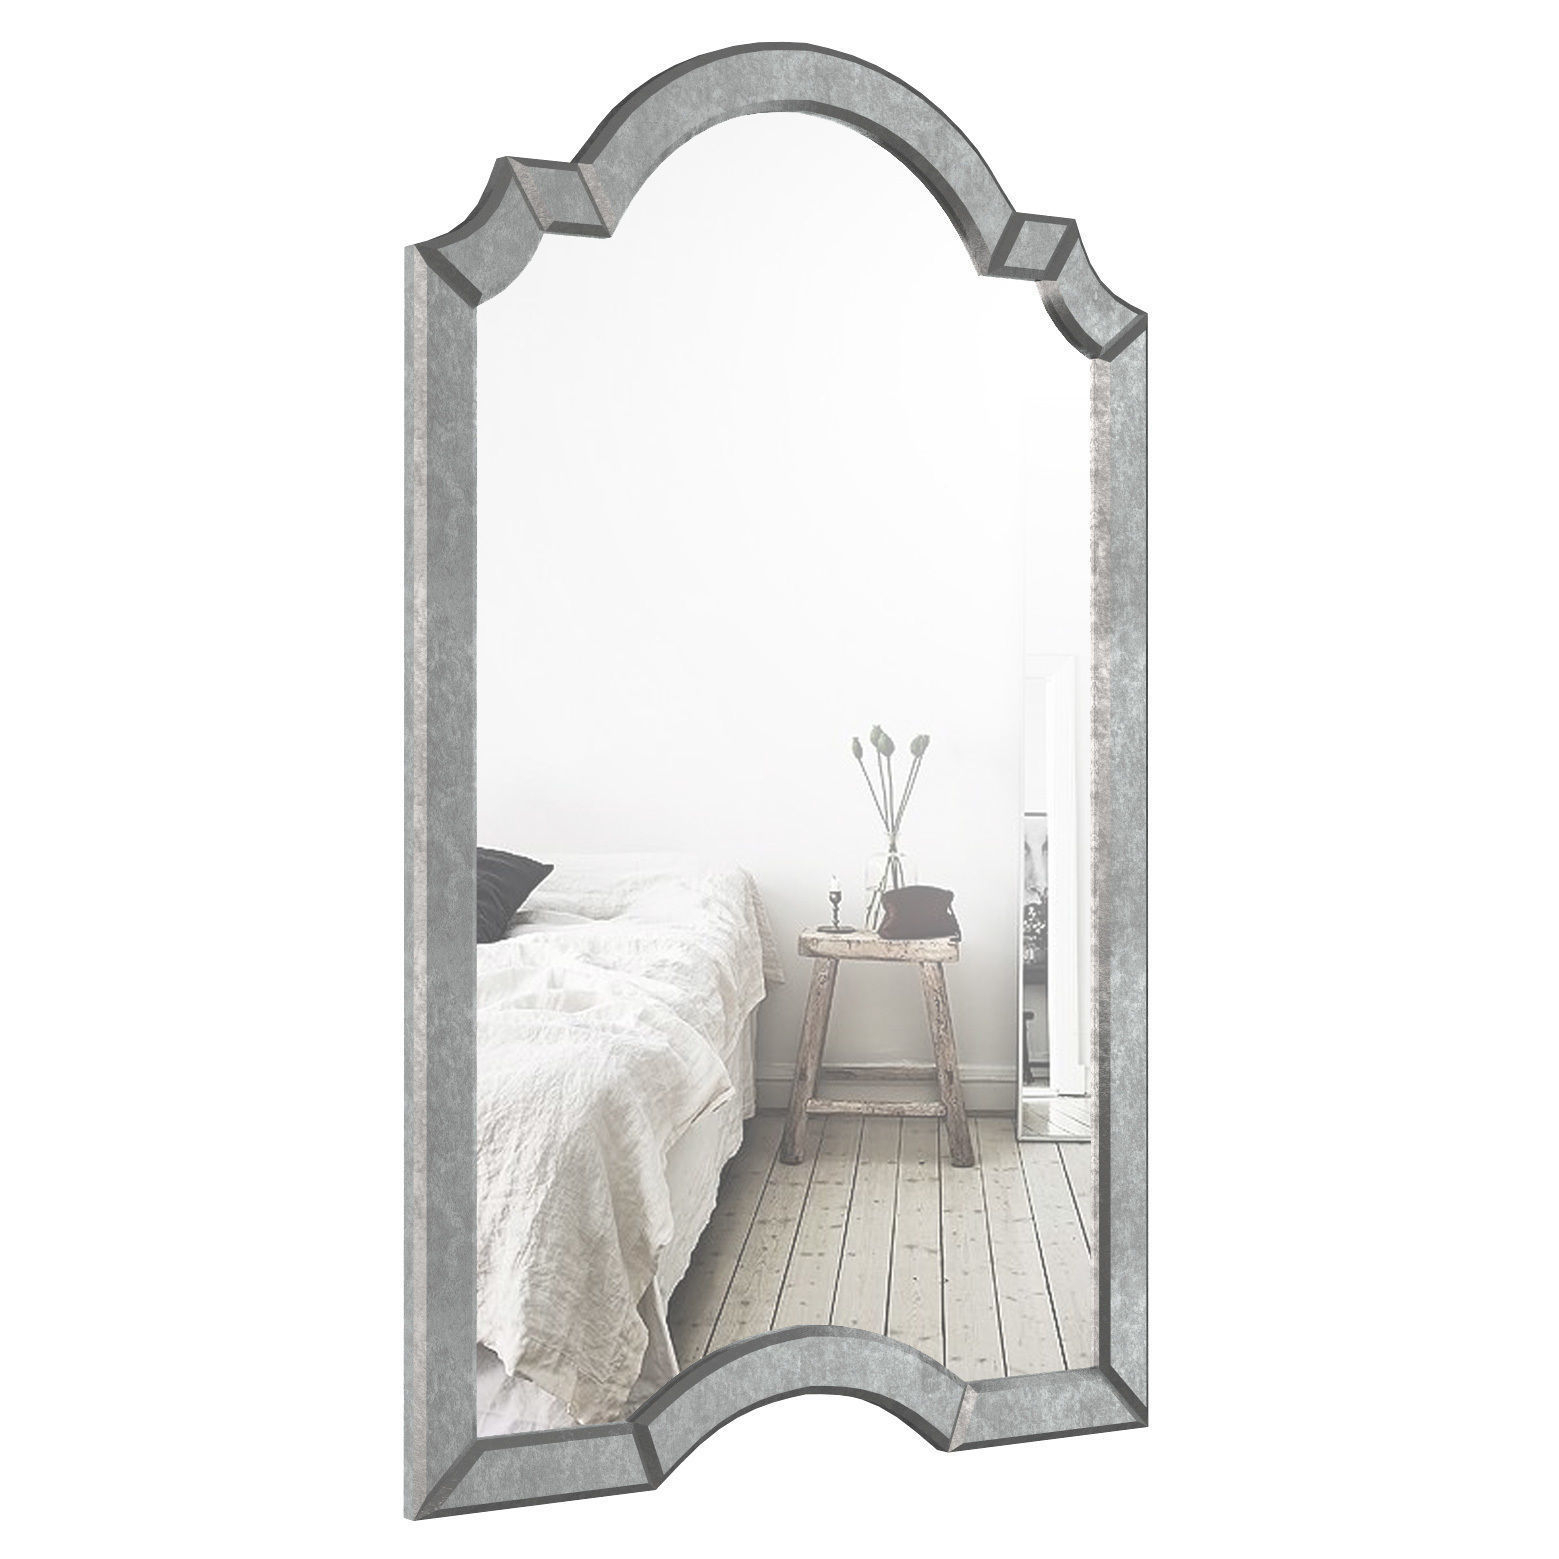 Ekaterina Arch   Crowned Top Wall Mirror Wlao1197 | 3D Model Regarding Ekaterina Arch/crowned Top Wall Mirrors (Photo 3 of 30)